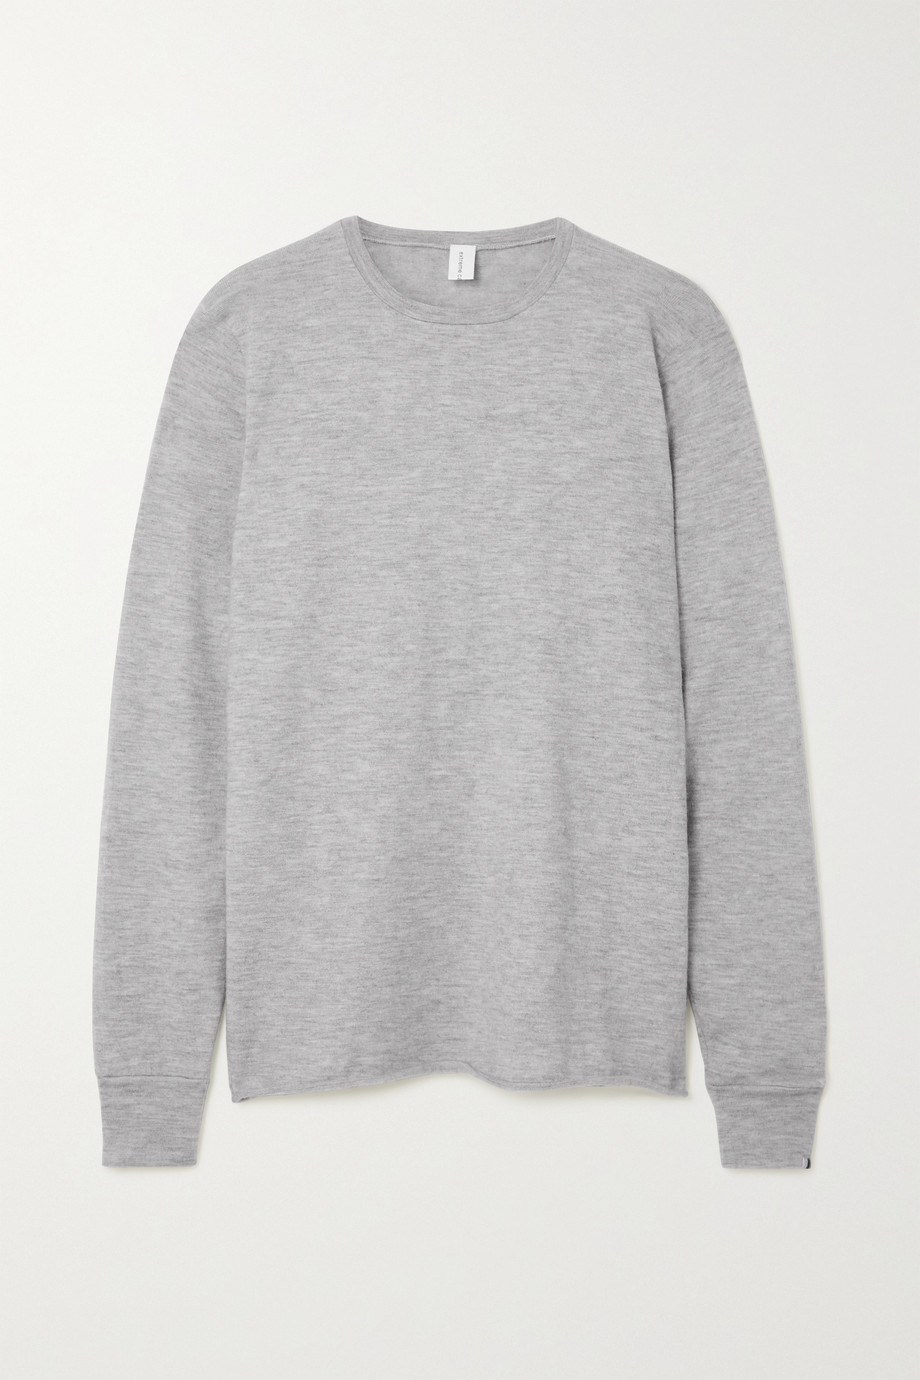 EXTREME CASHMERE Be Yourself cashmere-blend sweater